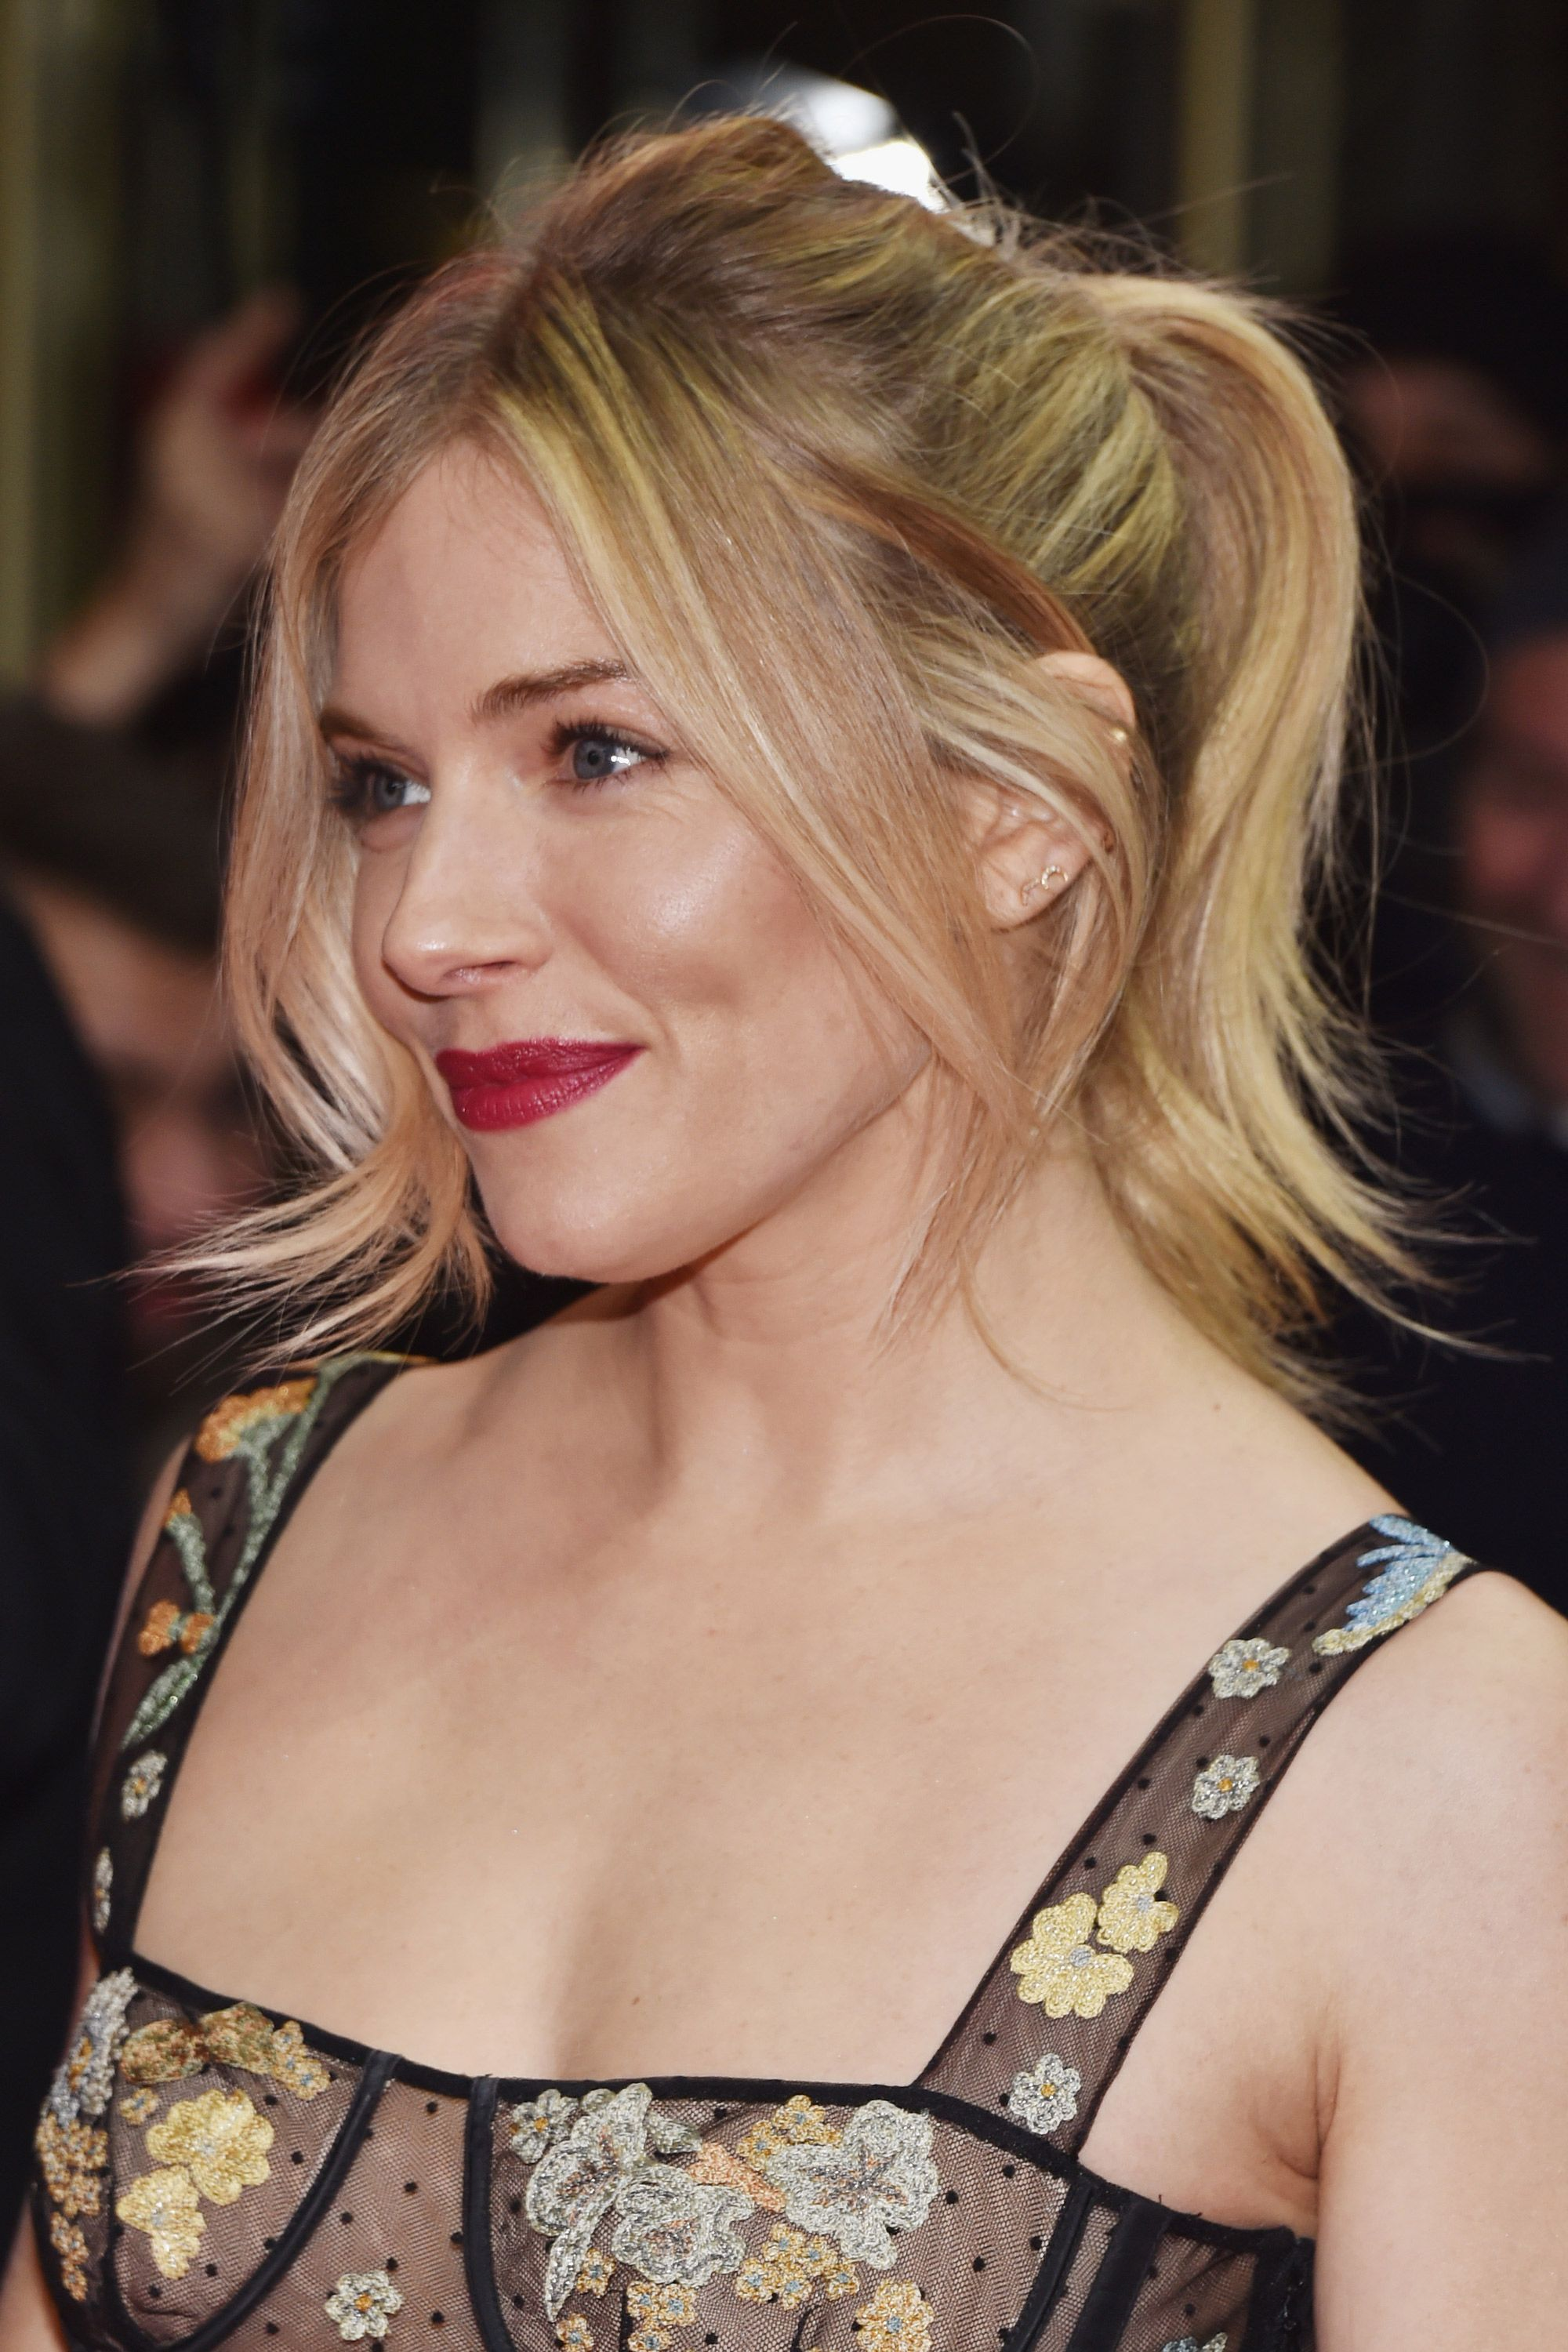 The luxury facials Sienna Miller, Michelle Williams and Naomi Watts get for an awards season glow